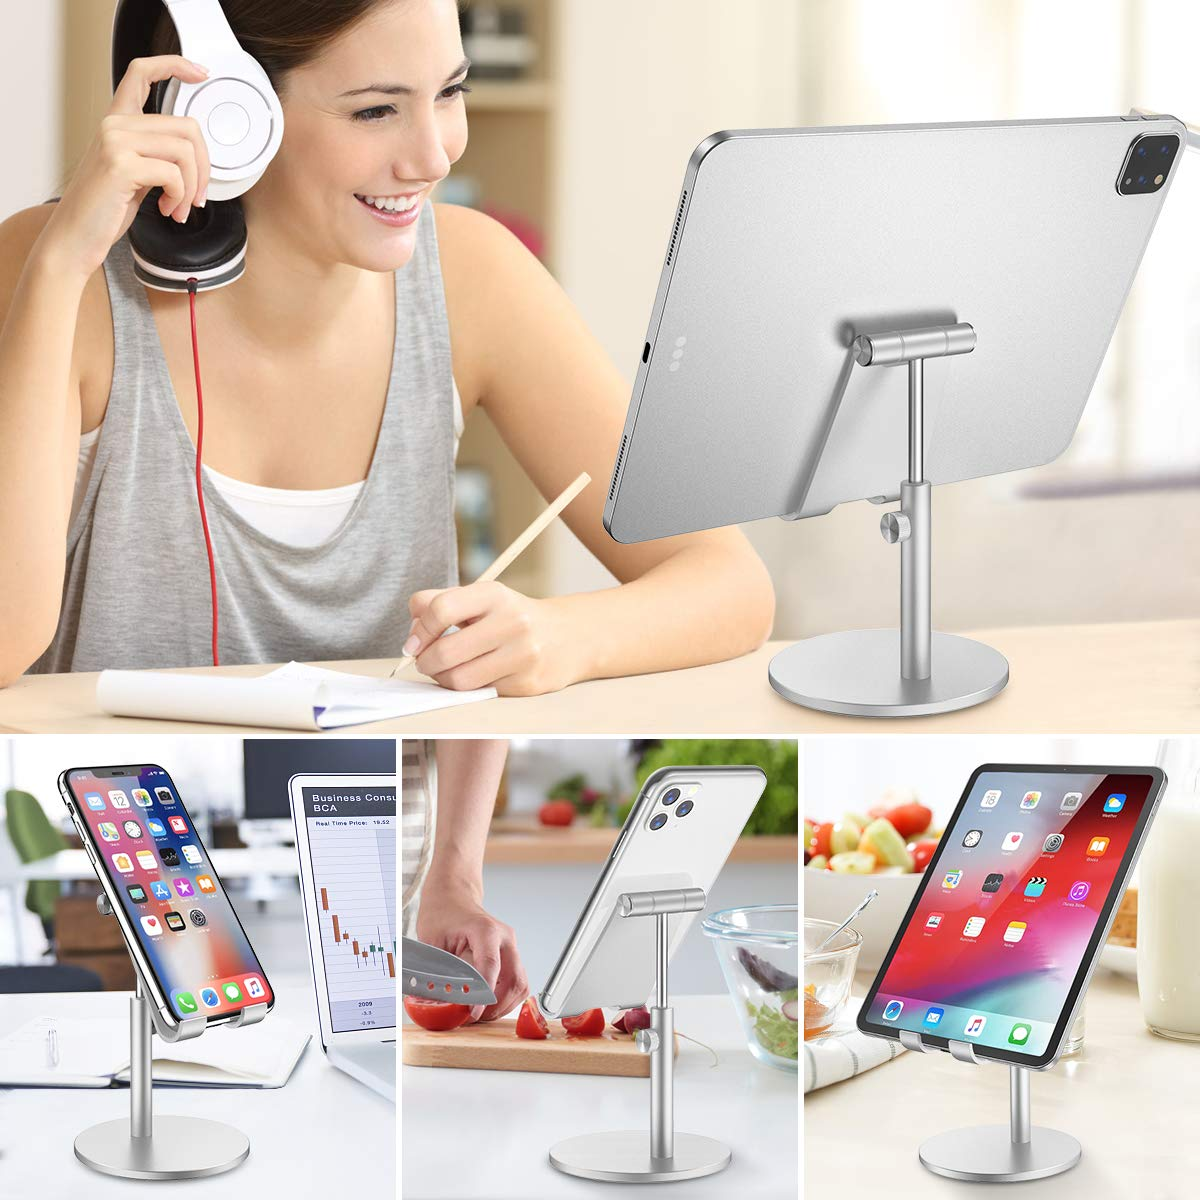 360 Degree Rotating Aluminum Alloy Cradle Mount Dock for iPhone Tablet etc 4-13 Screen Smartphone /& iPad Tablet Stand Samsung 2020 Upgraded Newest Height Adjustable Desktop Stand Holder